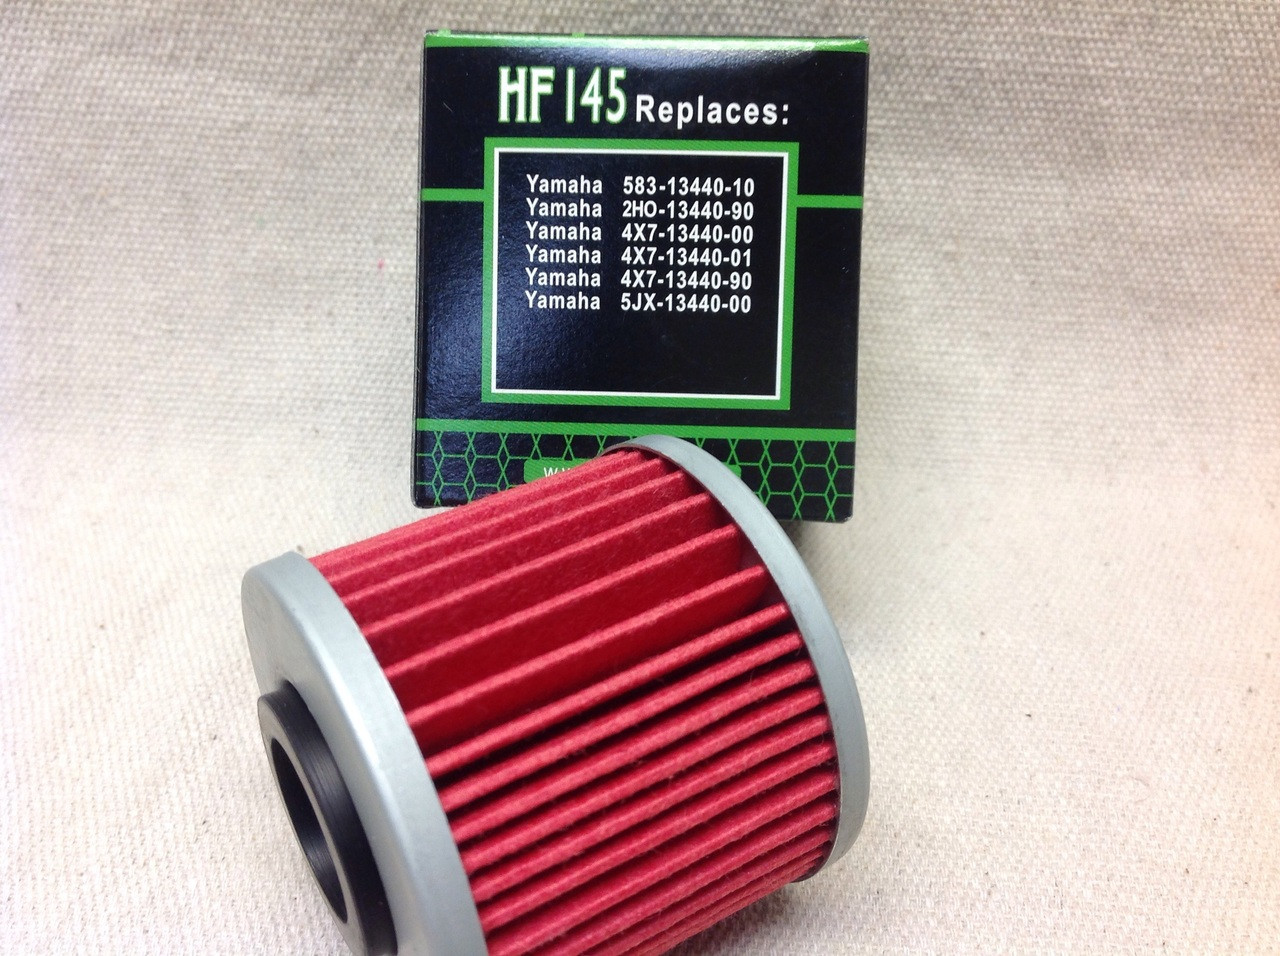 4X7-13440-90-00,5JX-13440-00-00 Oil Filter Fits YAMAHA Replaces 4X7-13440-01-00